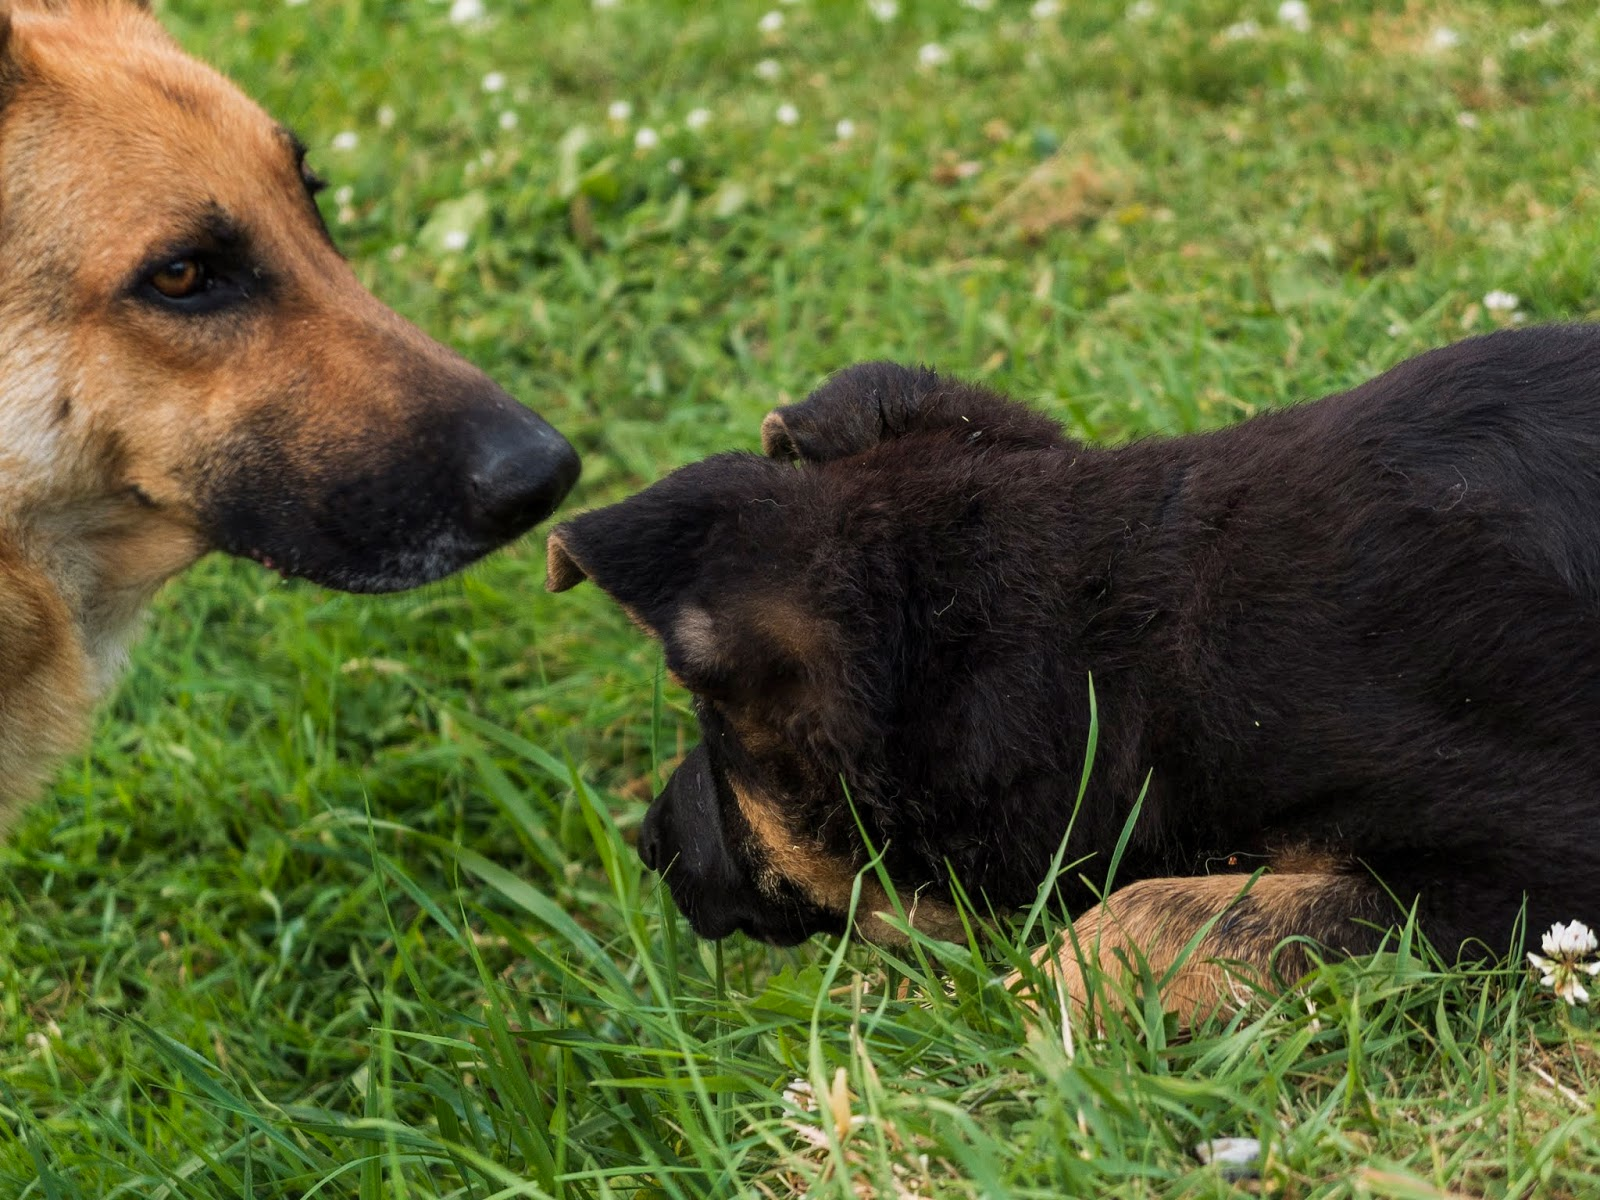 A 3 month old German Shepherd puppy Poppy sniffing grass with her mom Nala.